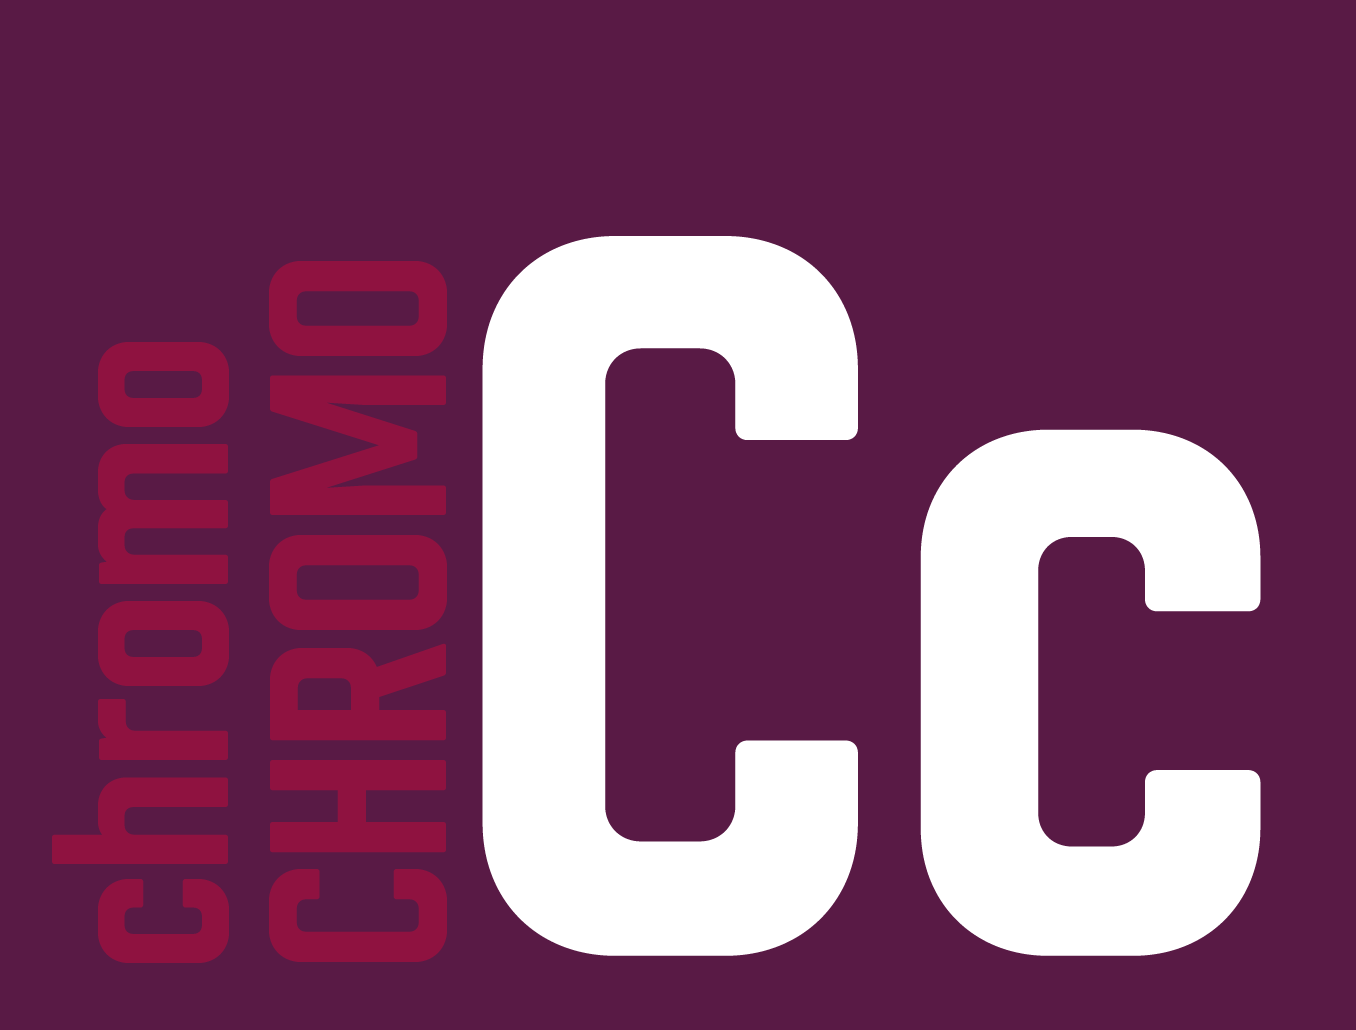 Designed by Dutch designer Thom Niessink, Chromoxome Pro is the completely redesigned version of the modular all caps typeface Chromoxome